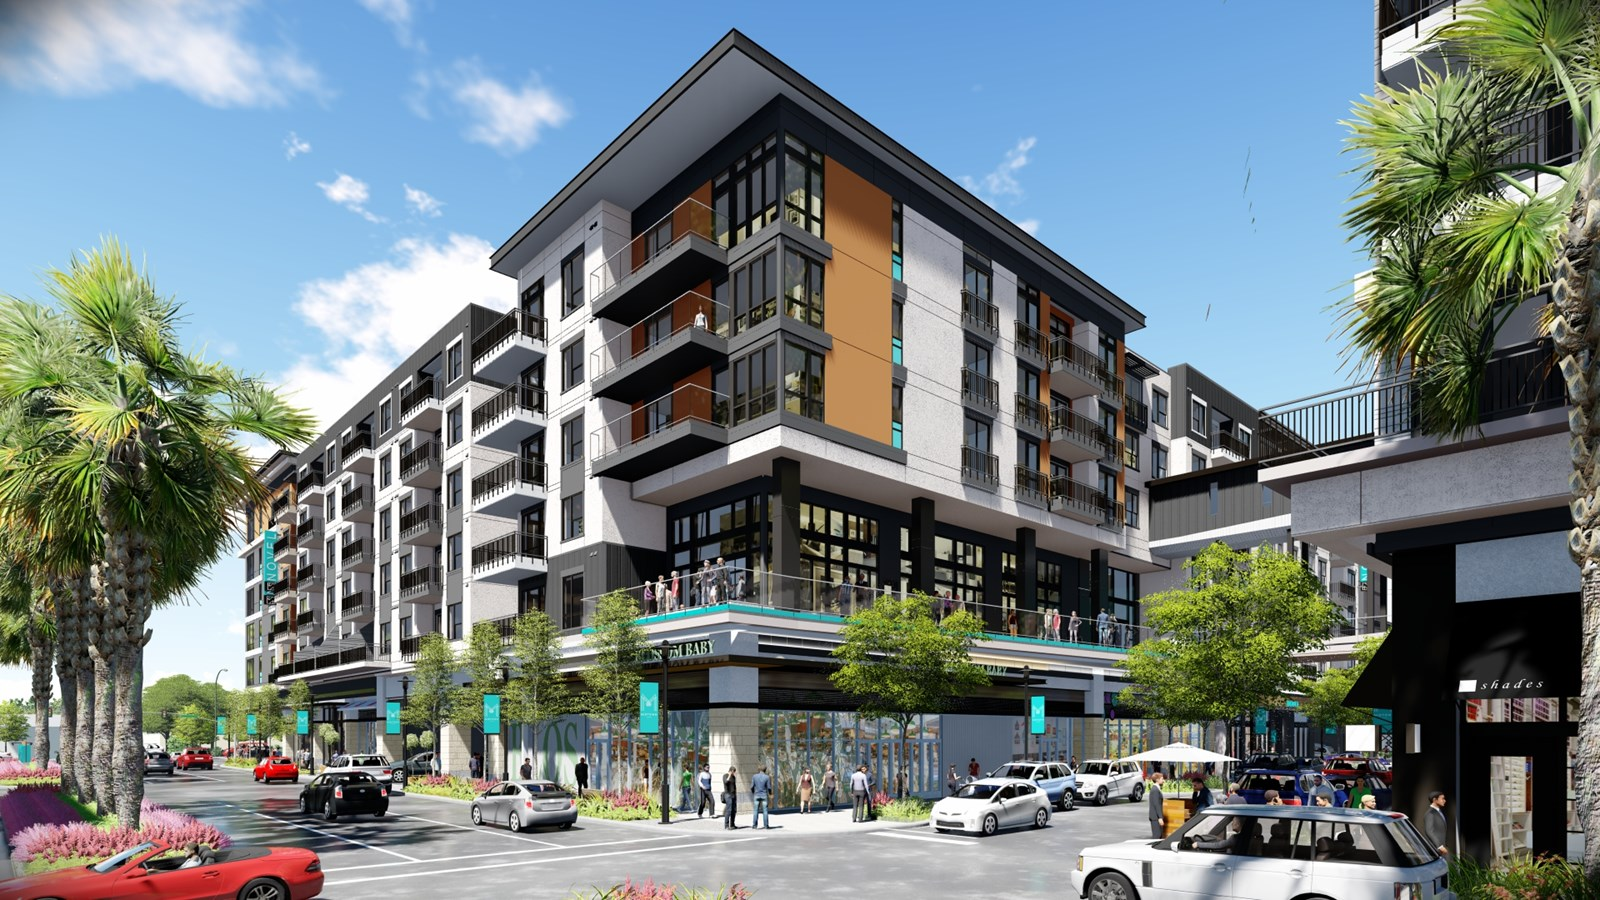 Luxury multi story apartment with pedestrians walking rendering